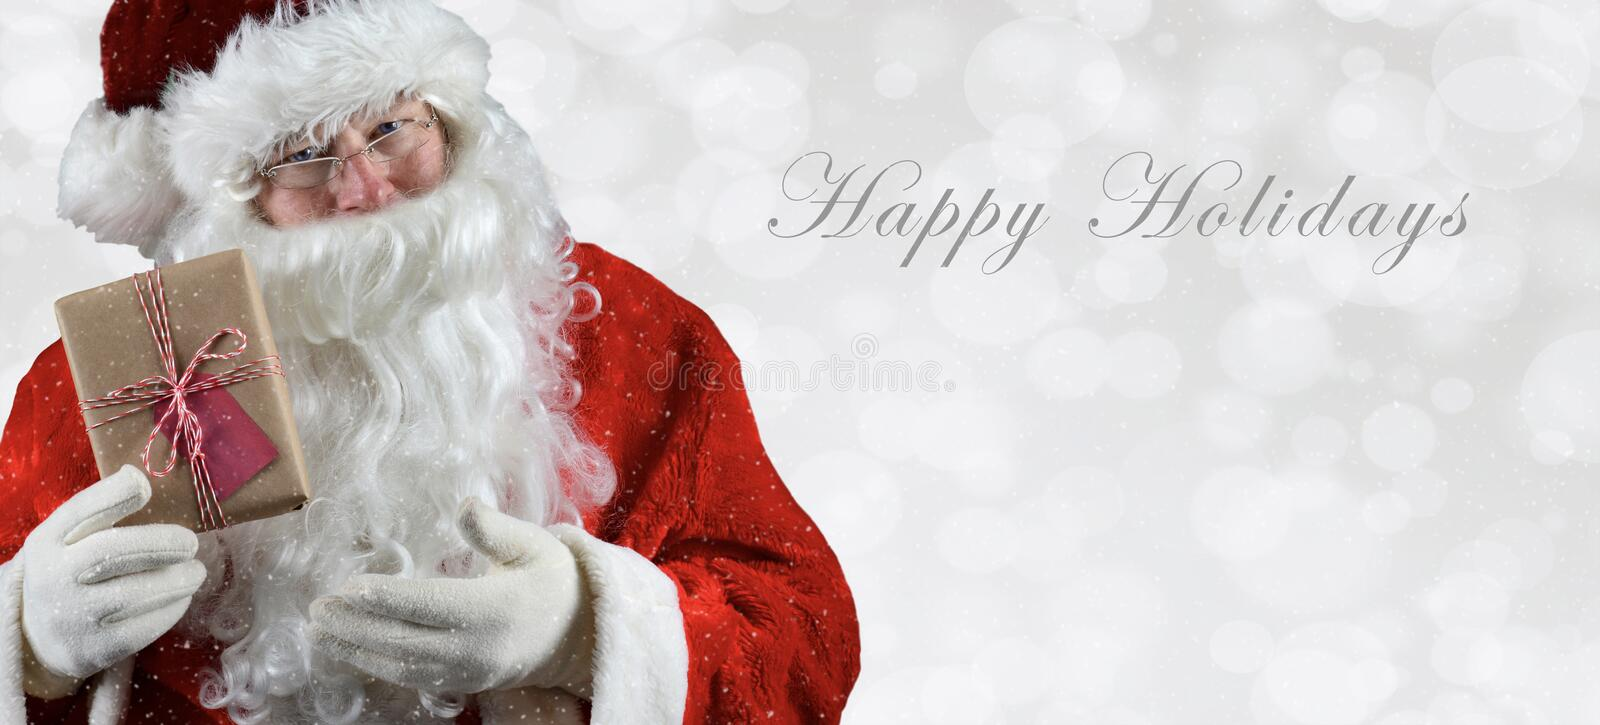 Banner sized inage with Santa Claus holding a present royalty free stock images